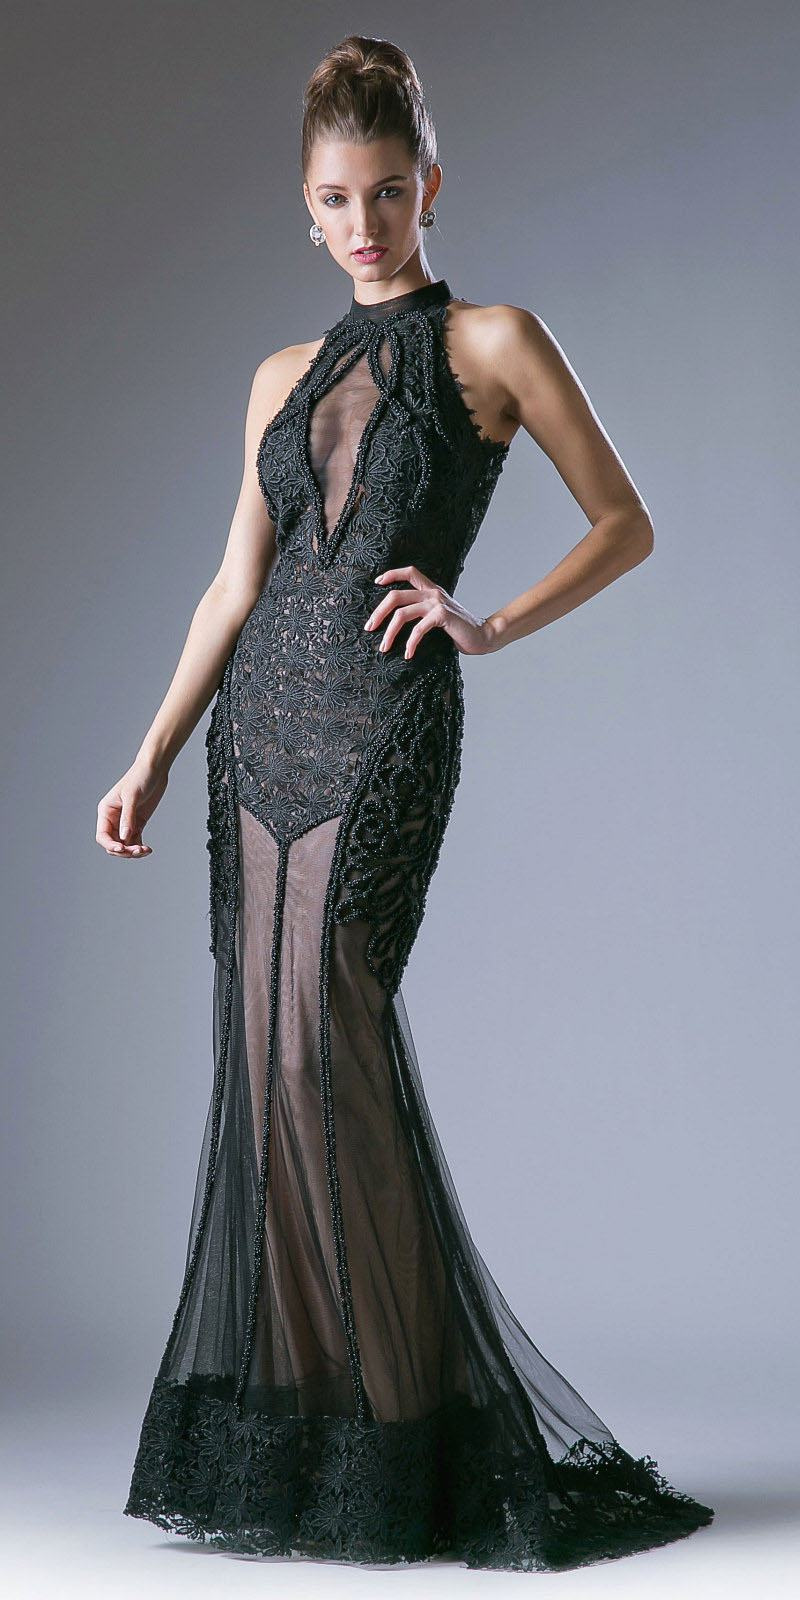 Cinderella Divine 496 Black Mermaid Prom Gown with Sheer Cut-Out ...